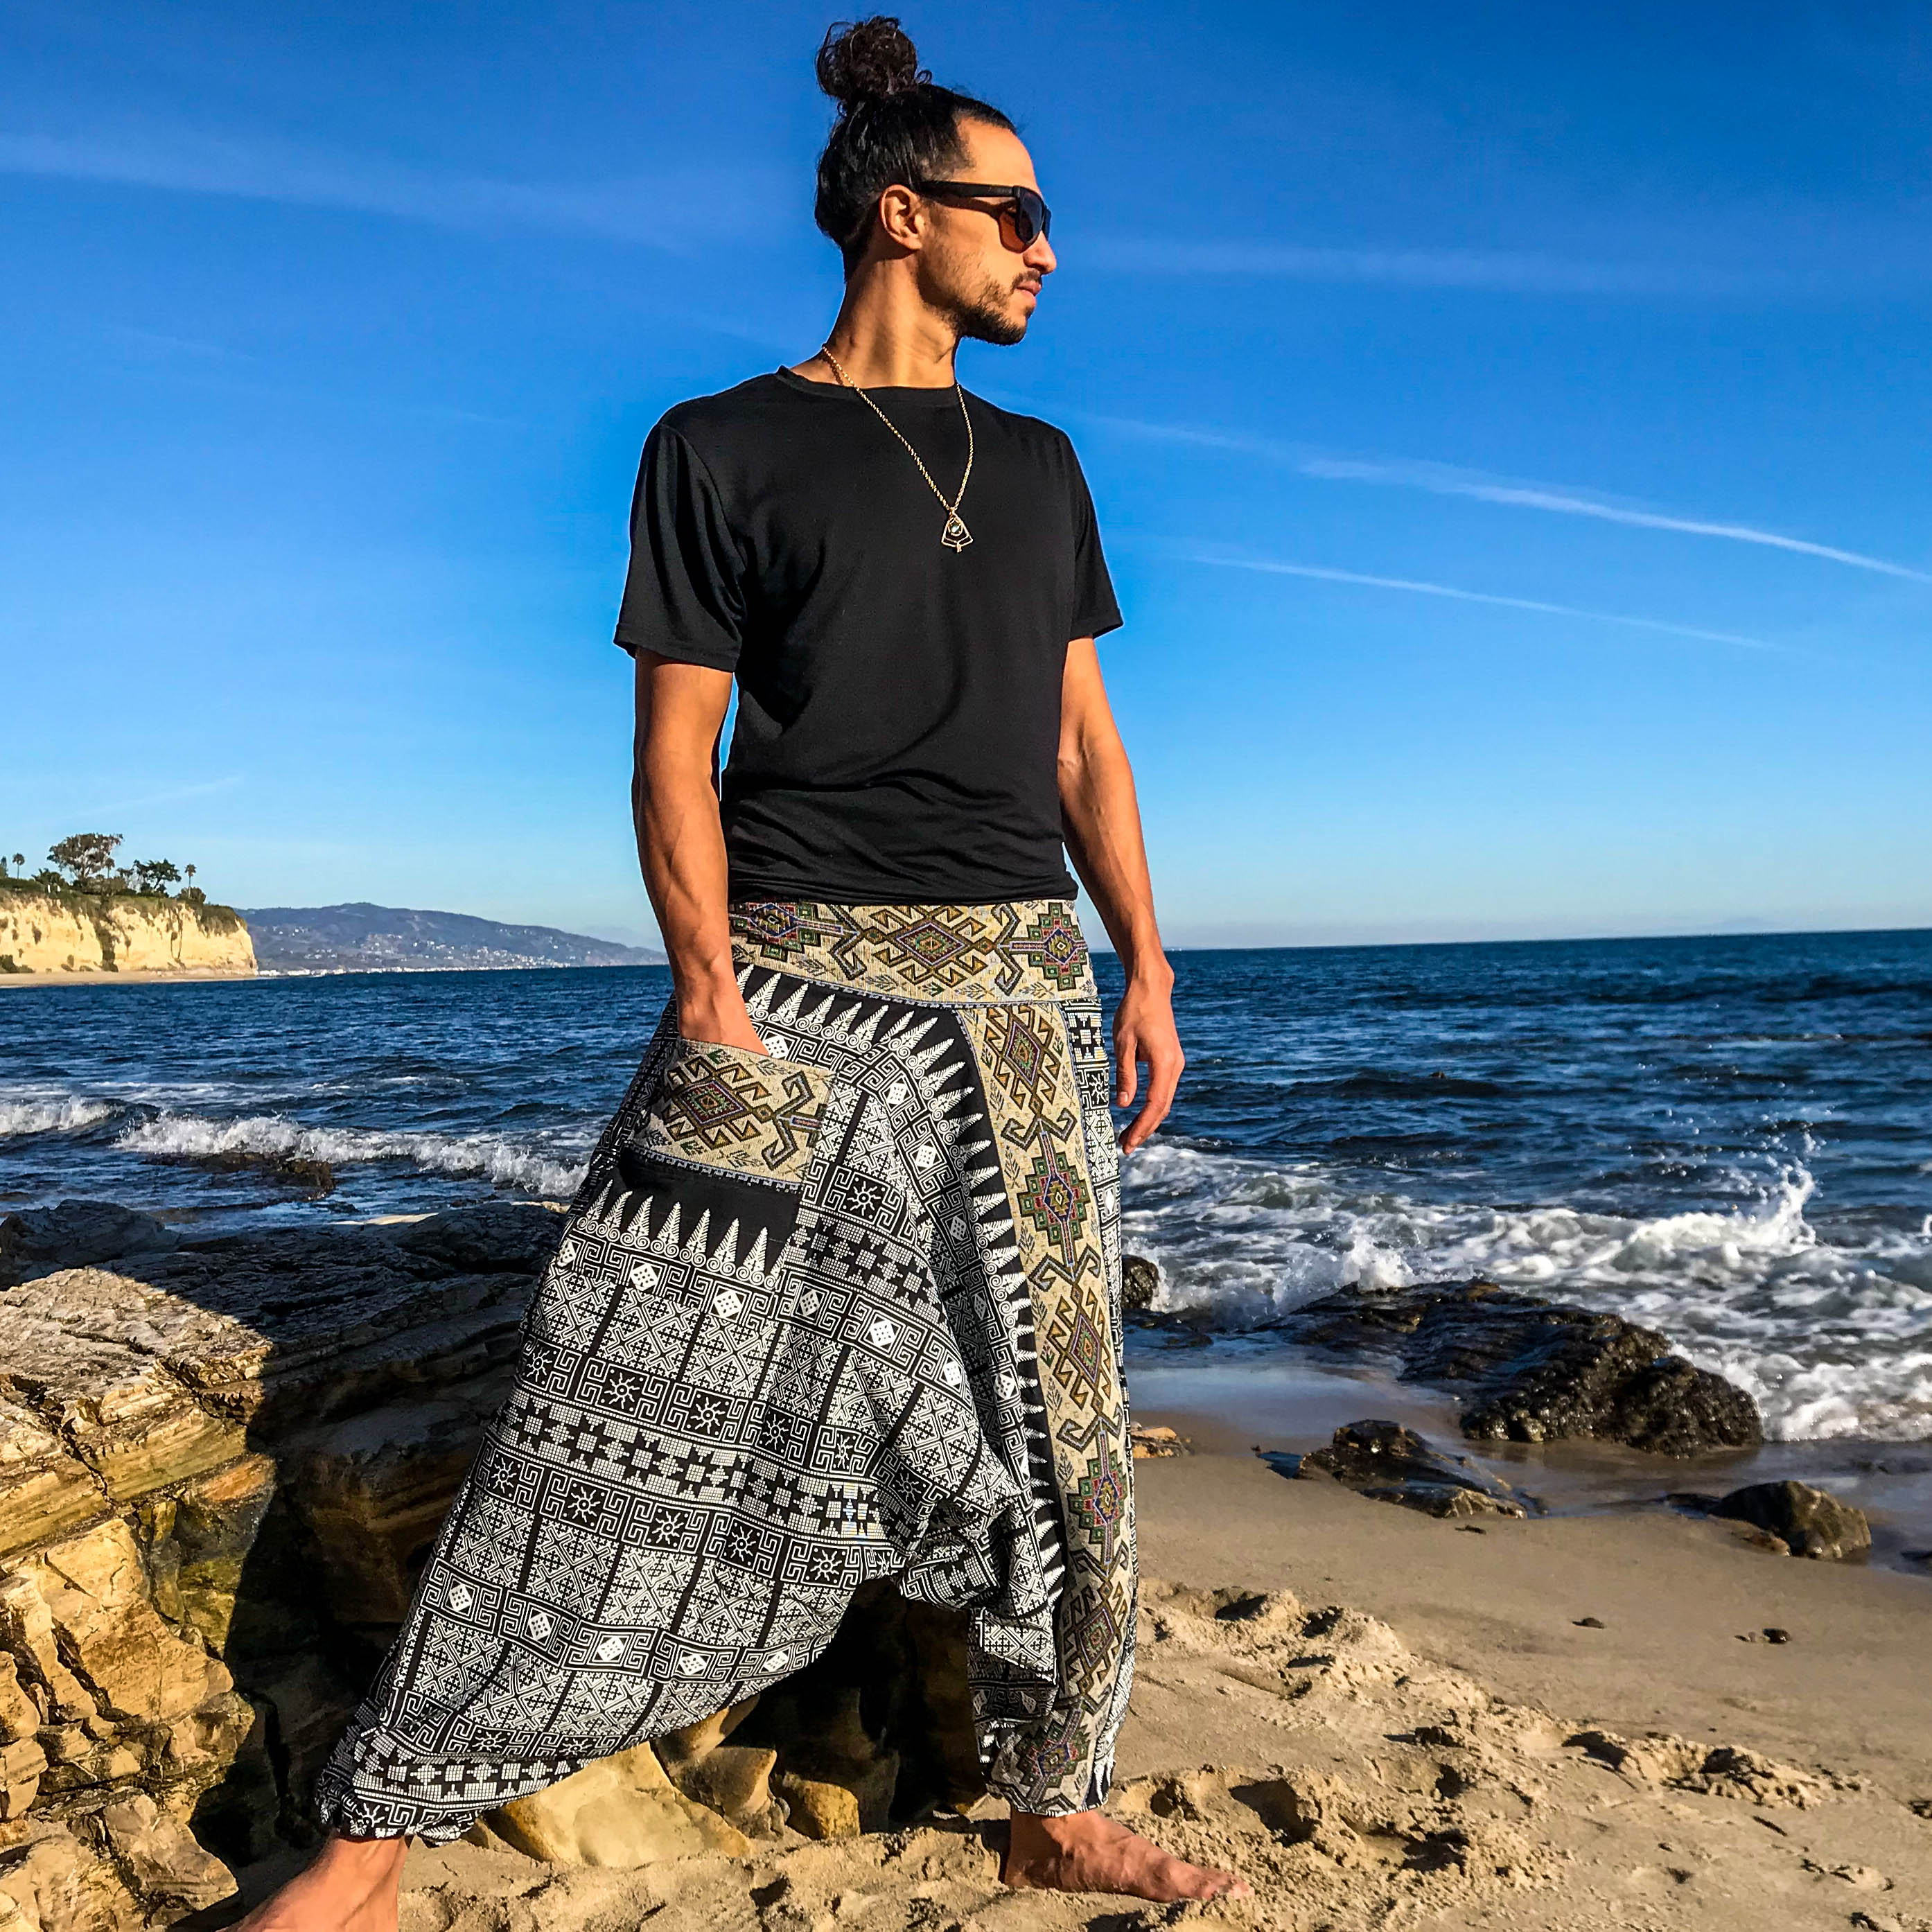 Handmade Harem Pants - Black on White Tribal